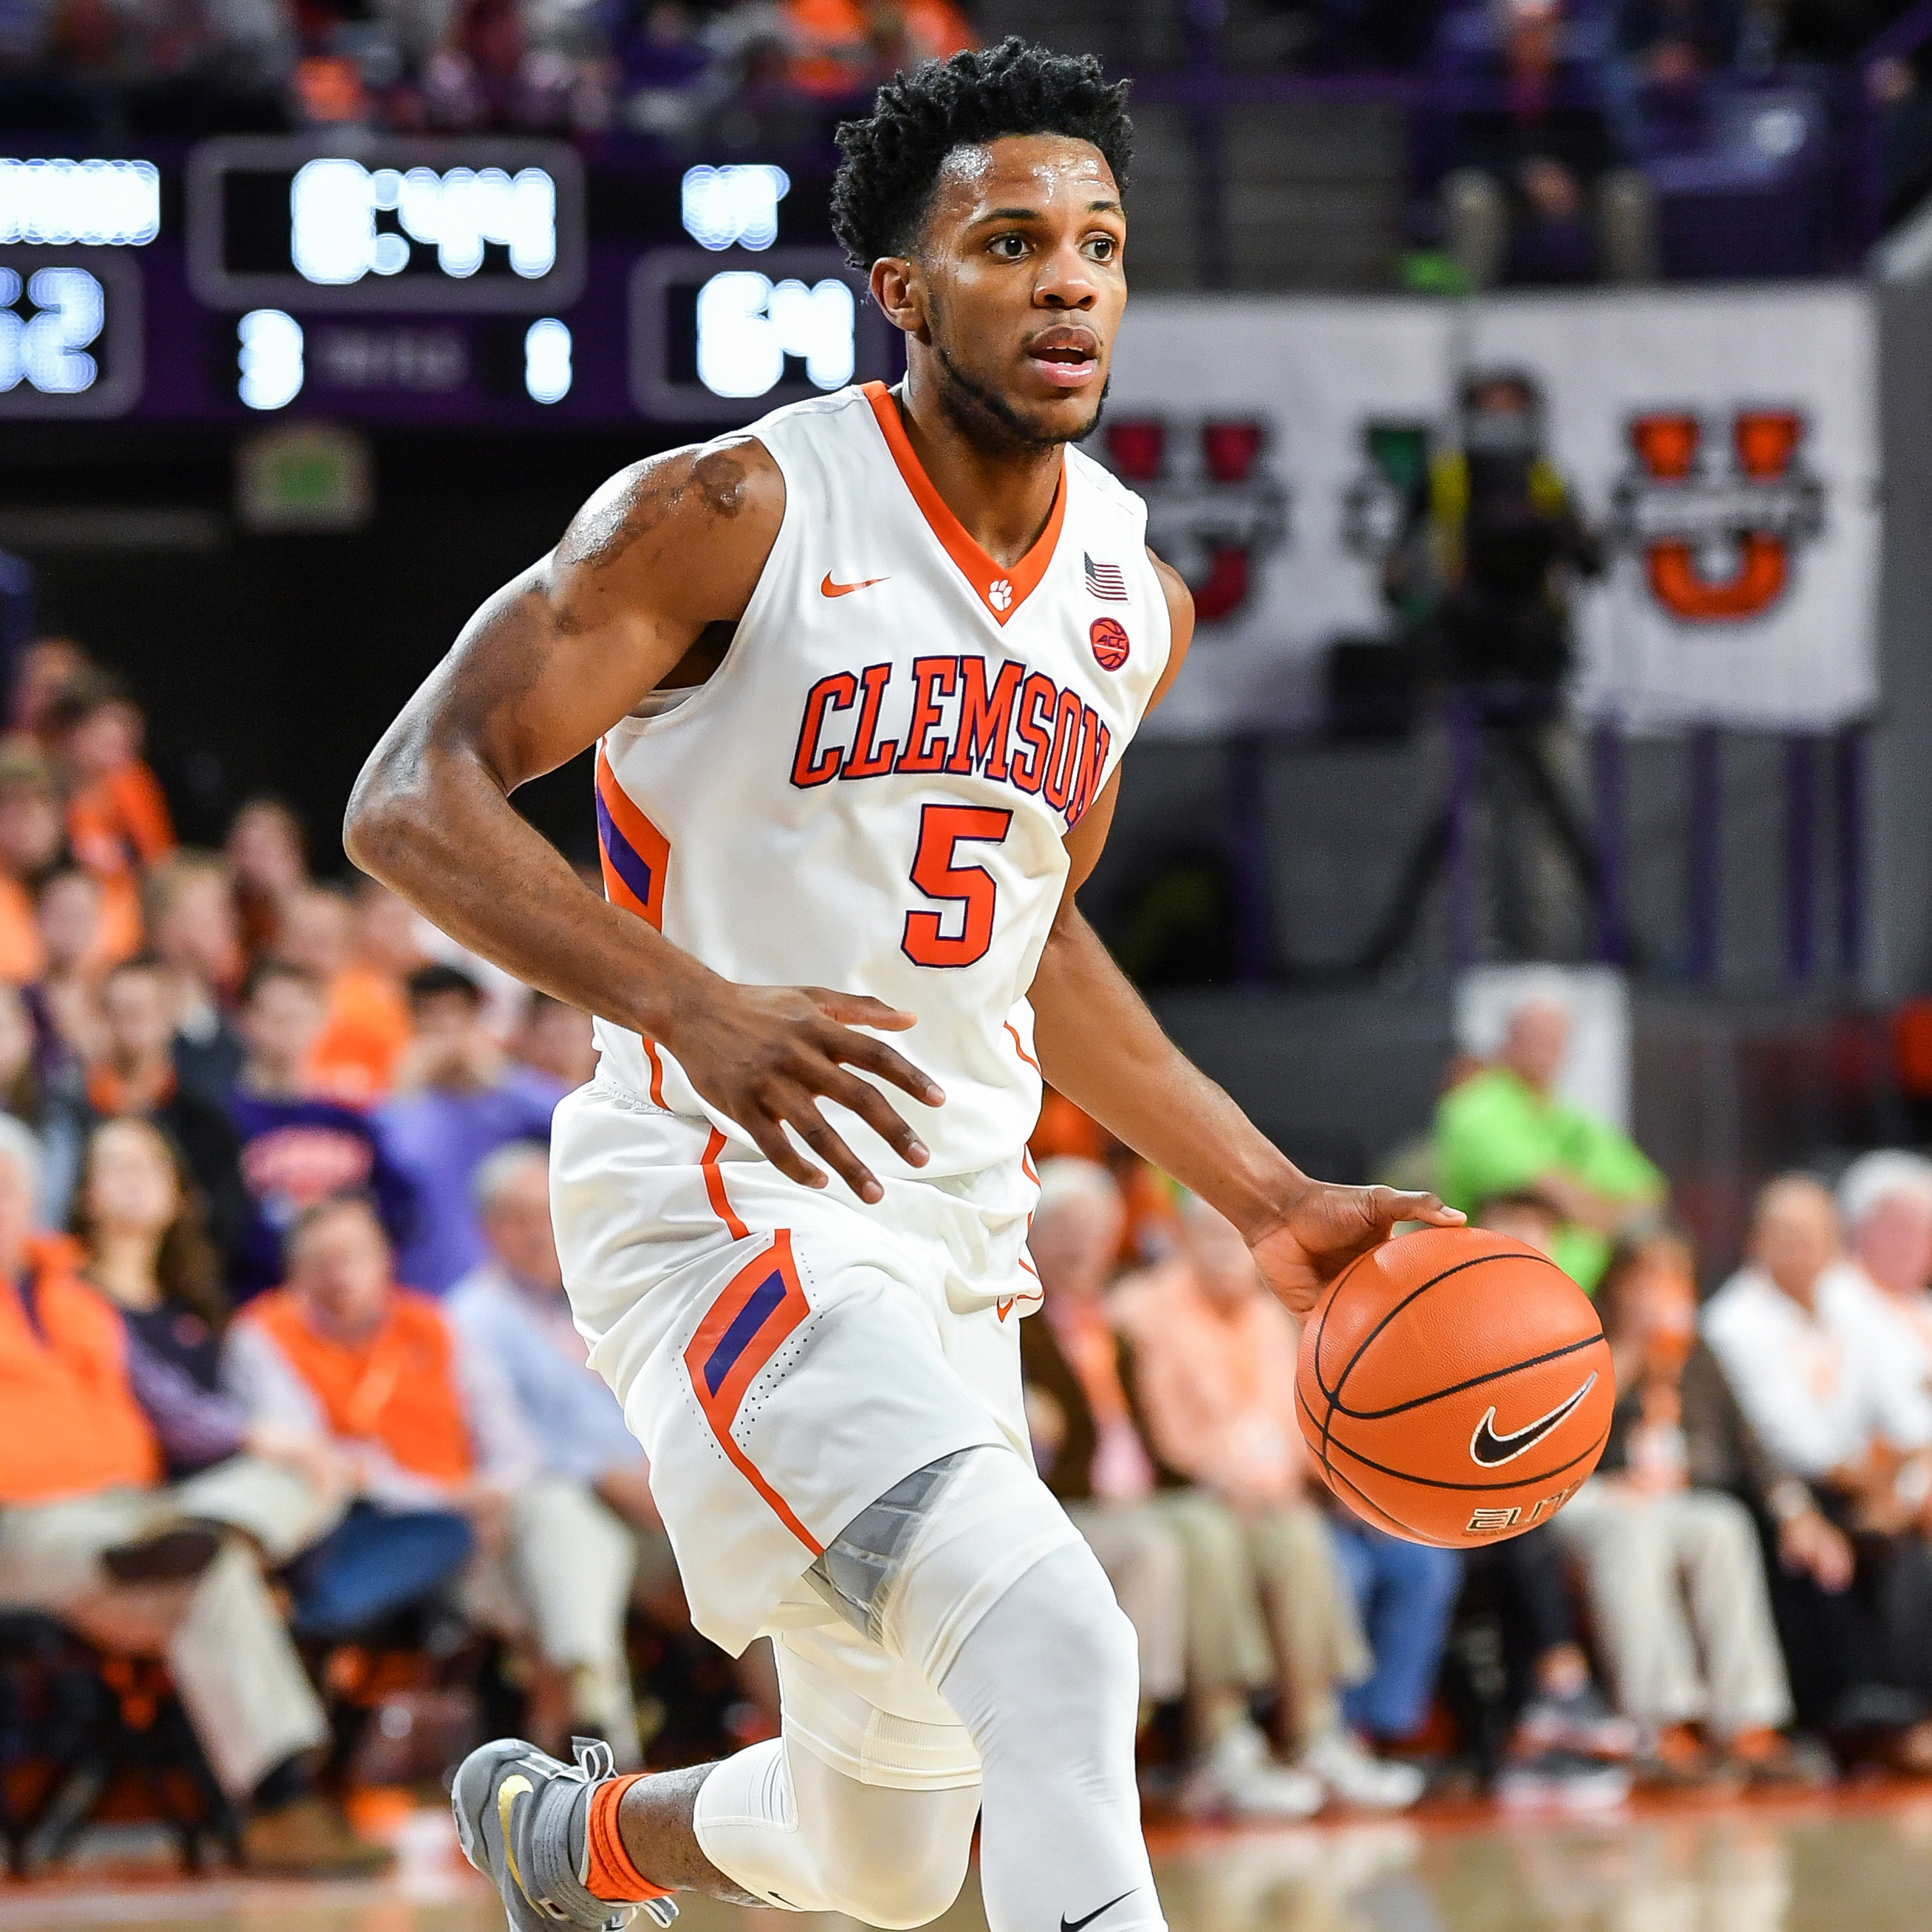 Clemson to Face Pittsburgh